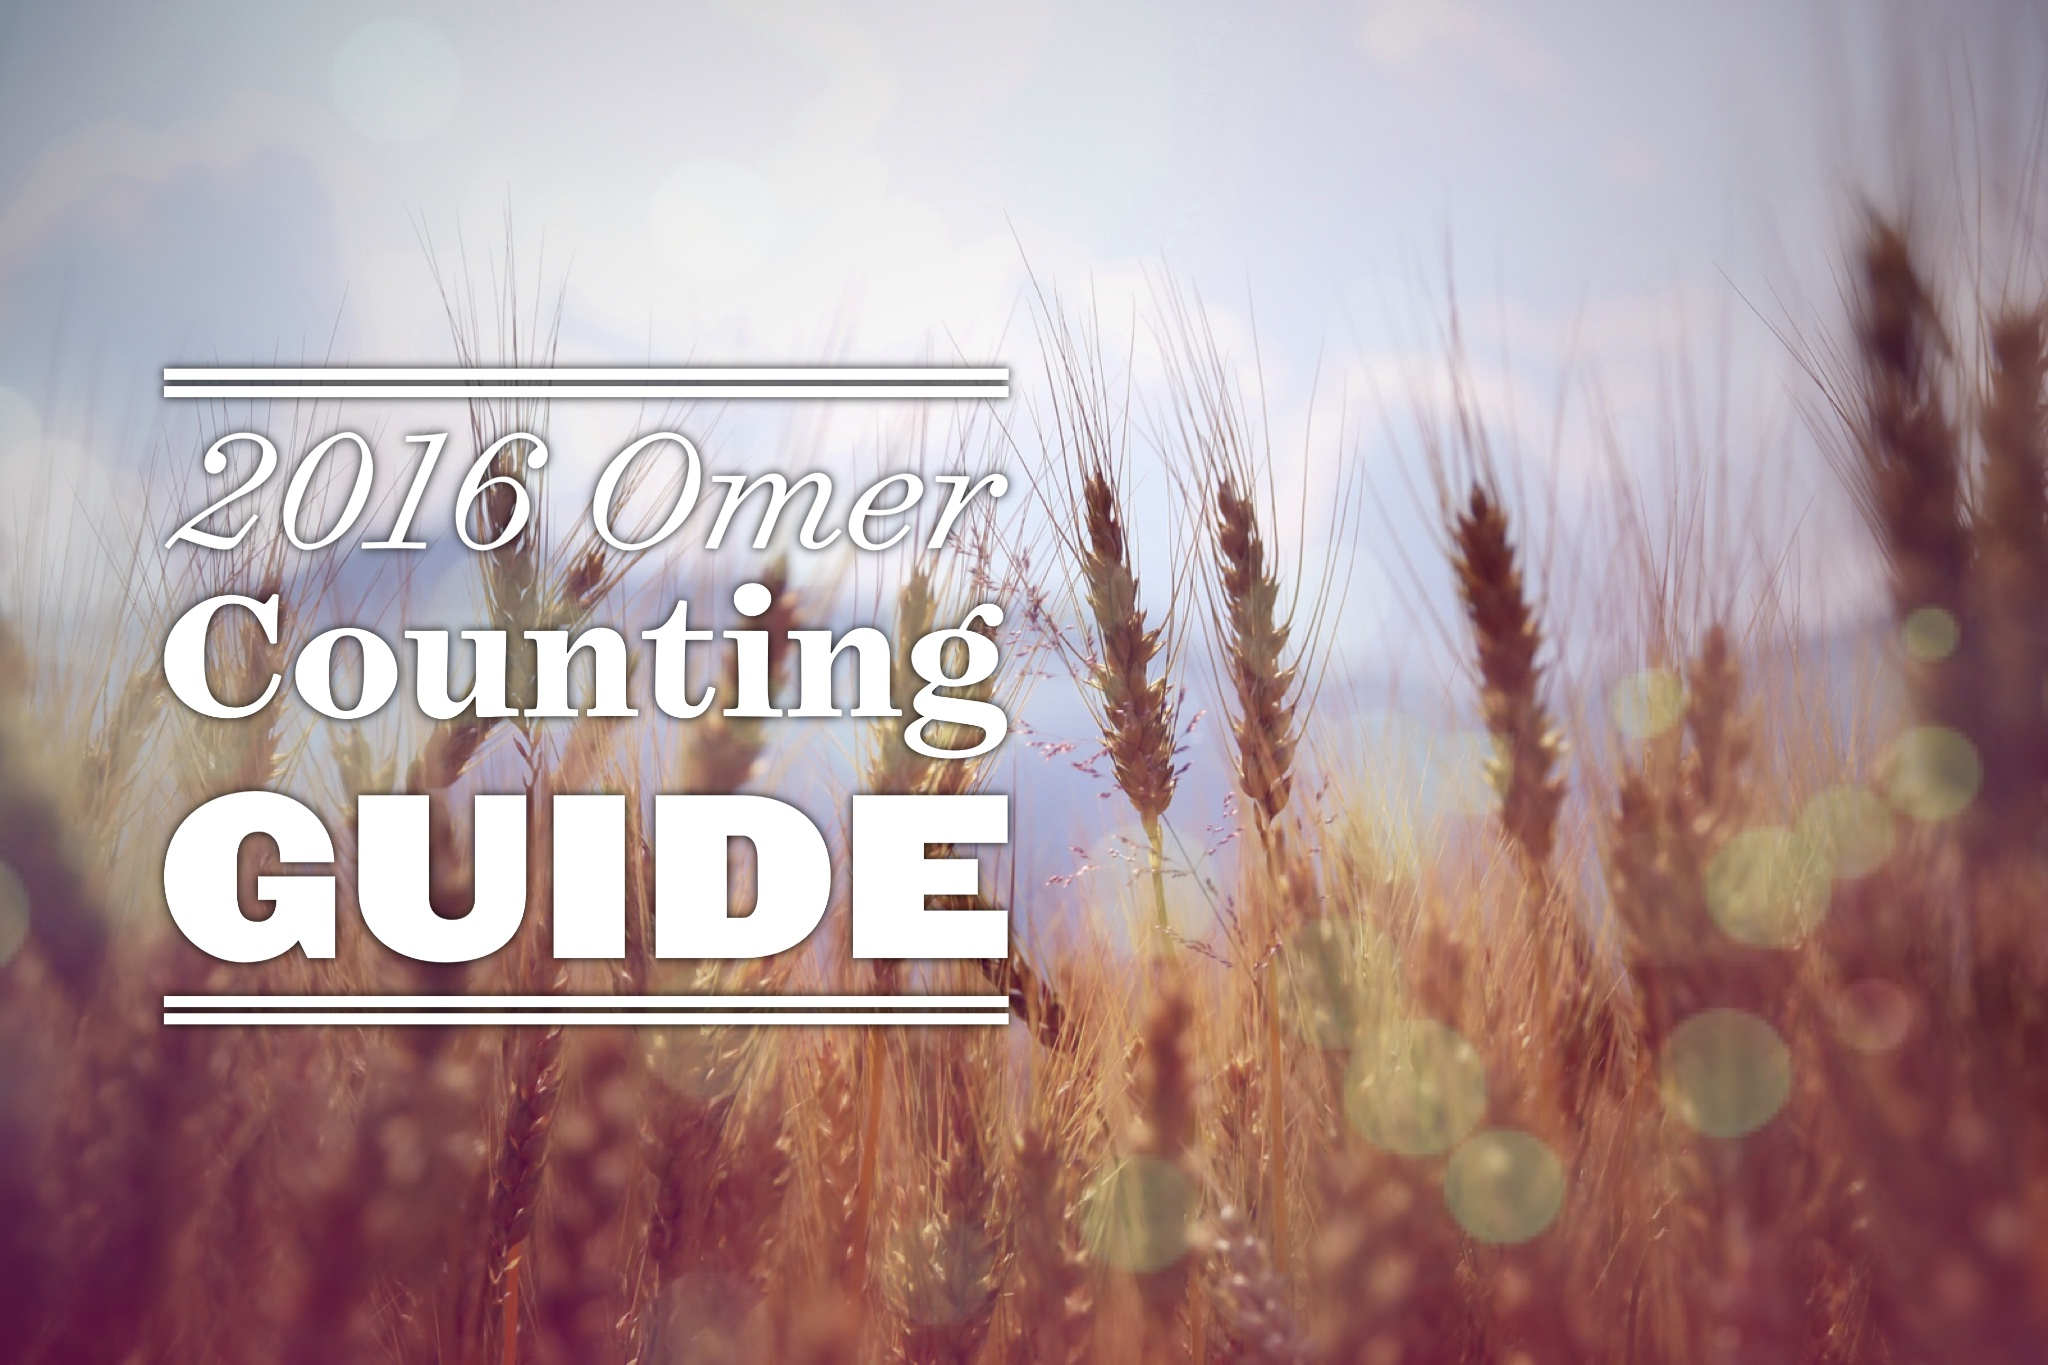 2016 Omer Counting Guide—just in time for Passover